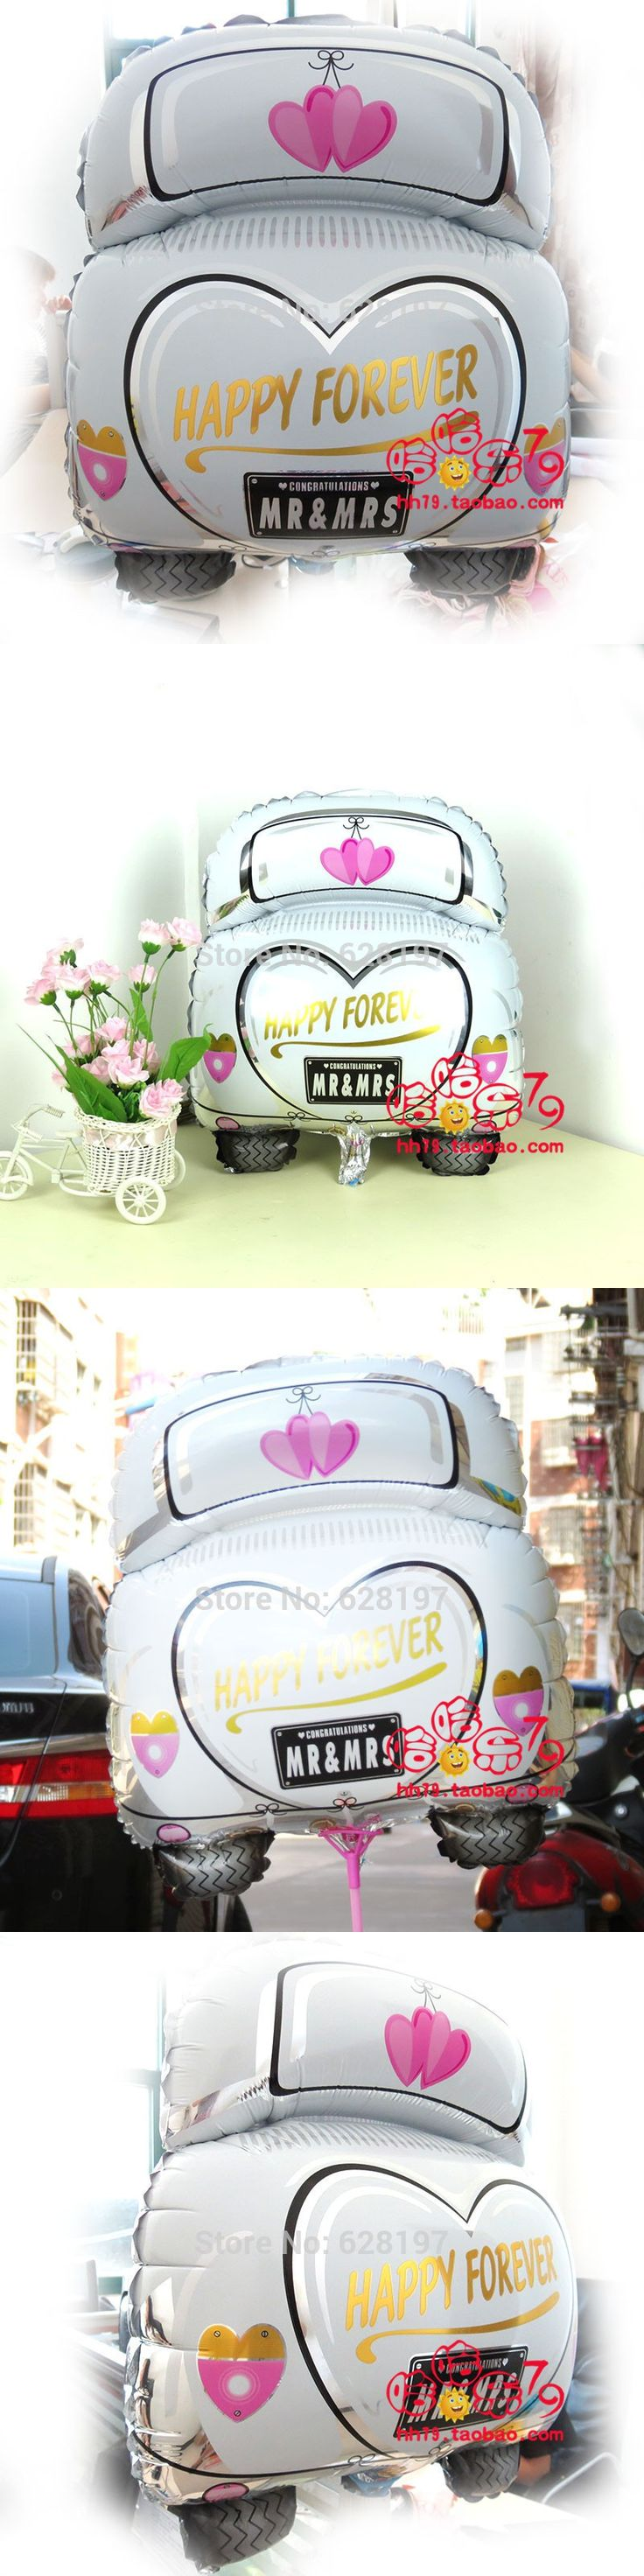 Wedding decorations for car  pcs multi color D Wedding car wedding Aanagram ballon foil ballon